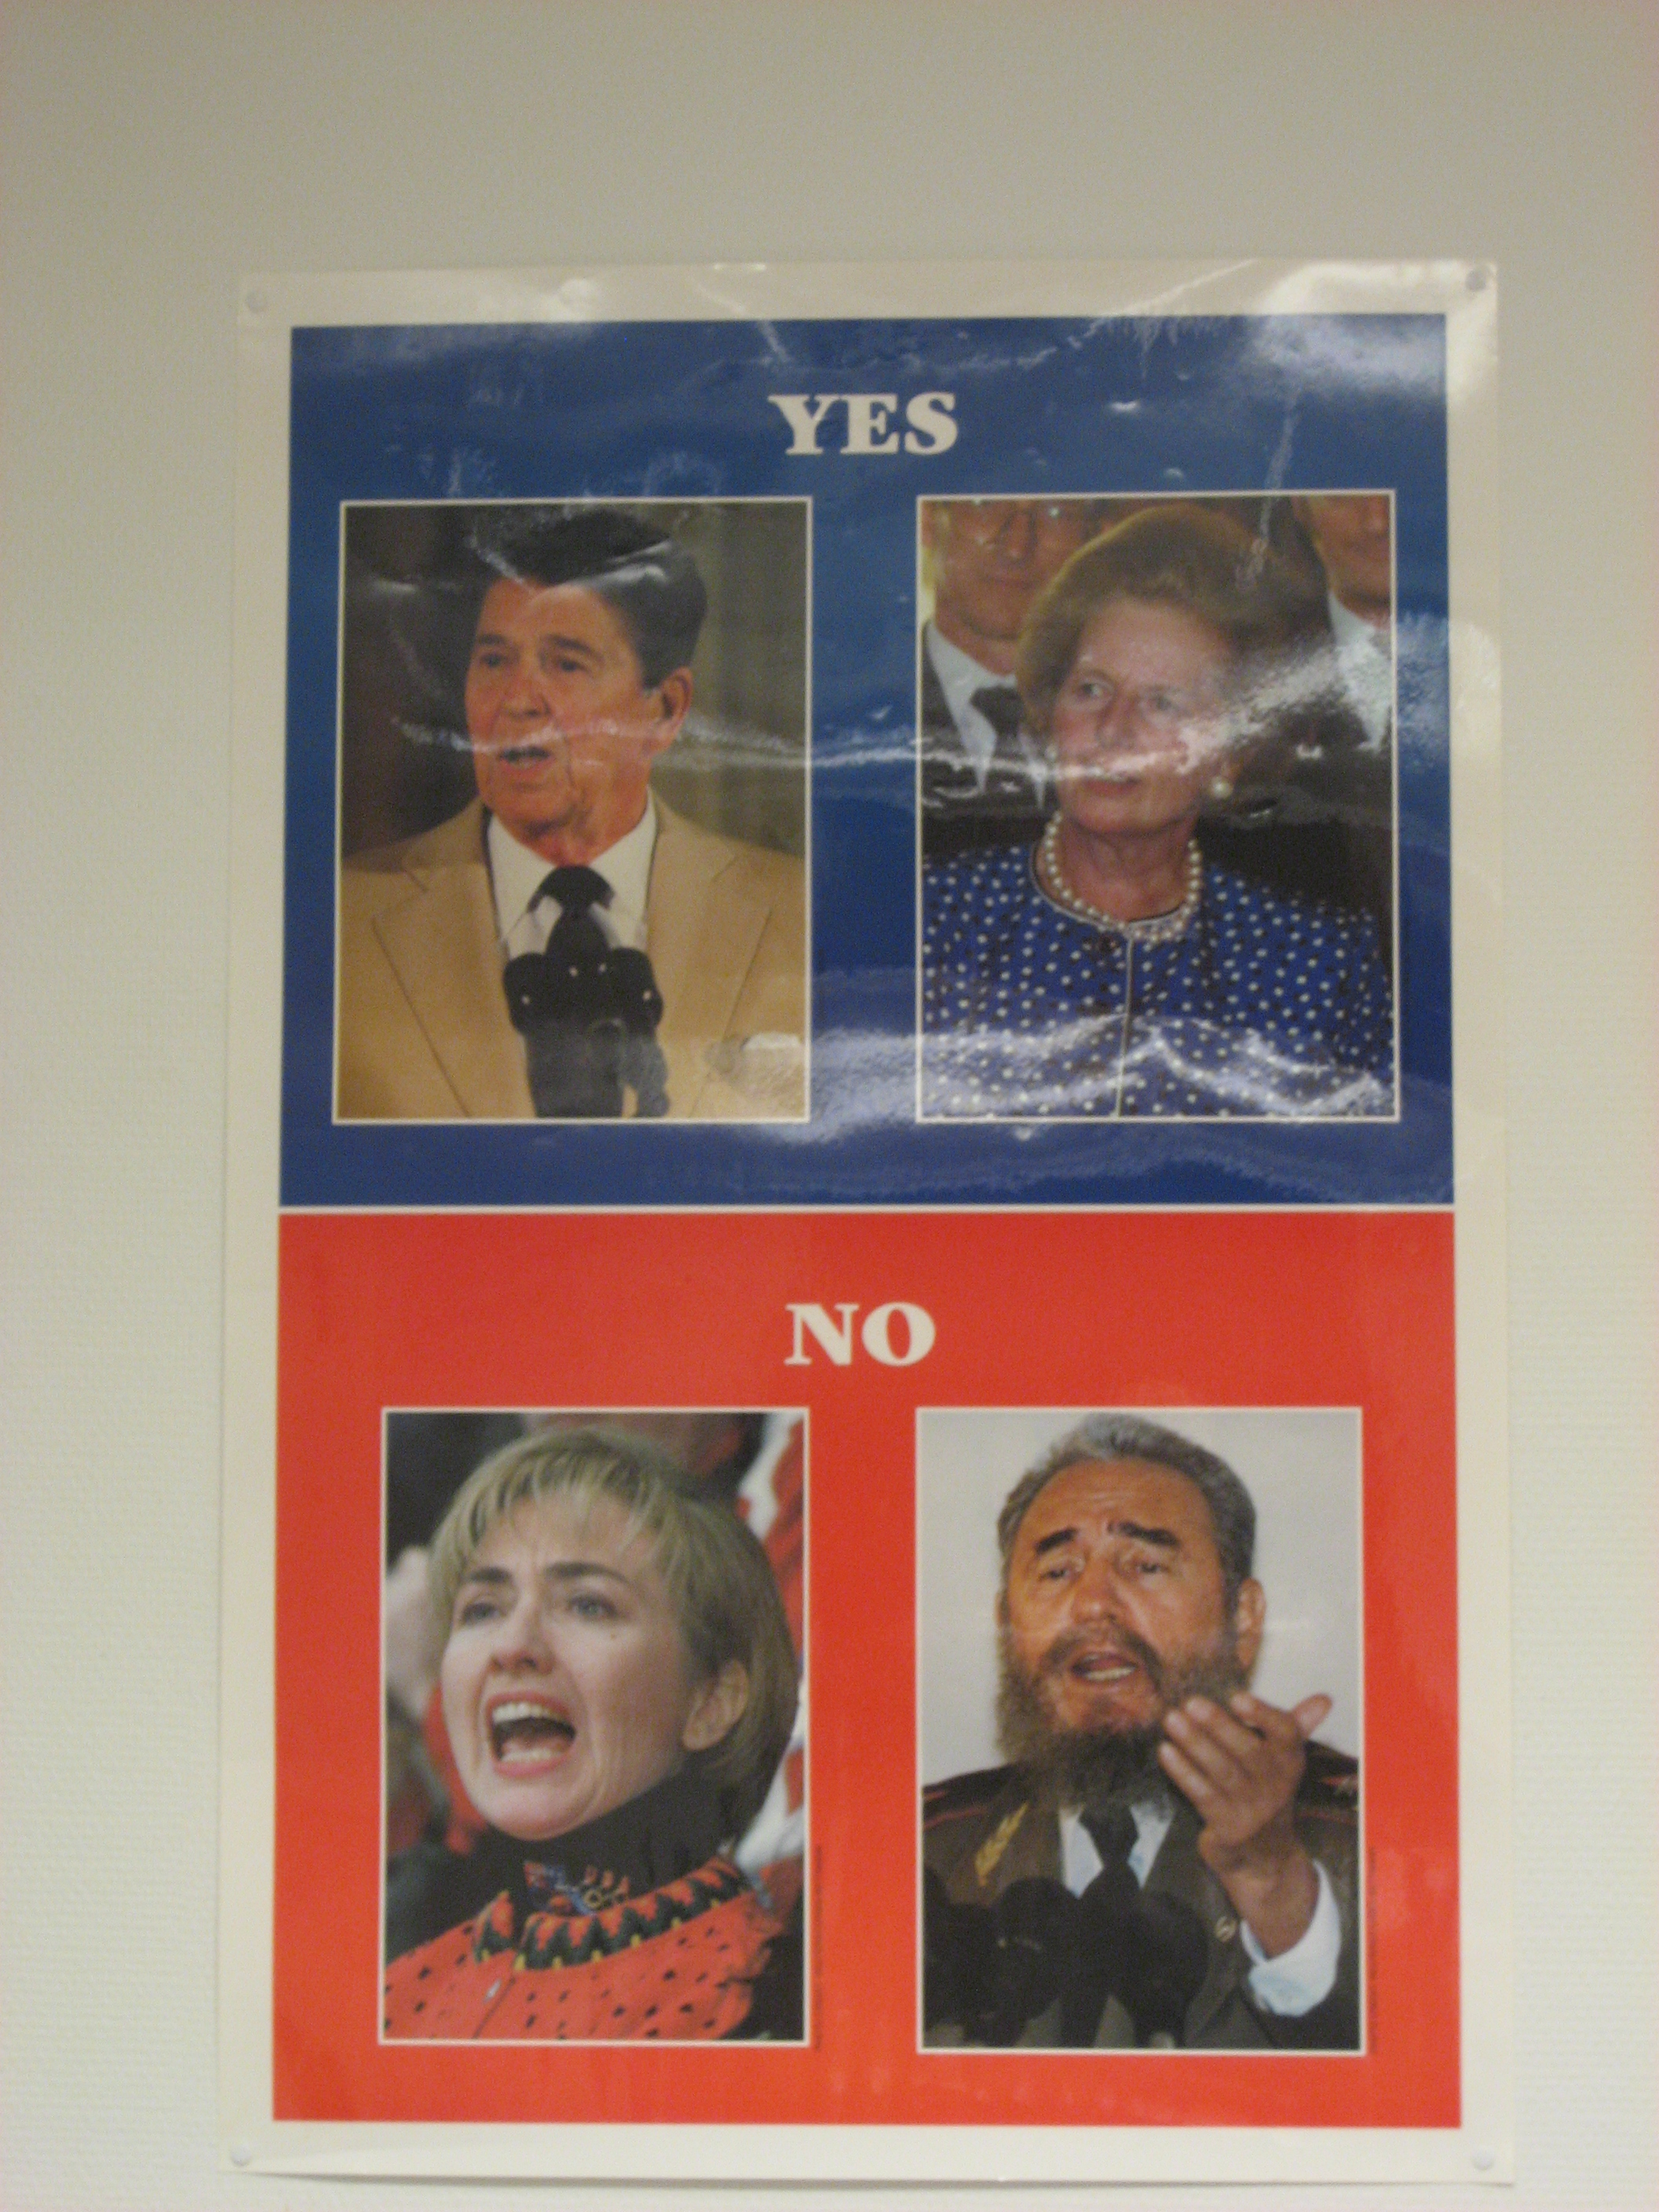 Reagan, Thatcher, Clinton, Castro